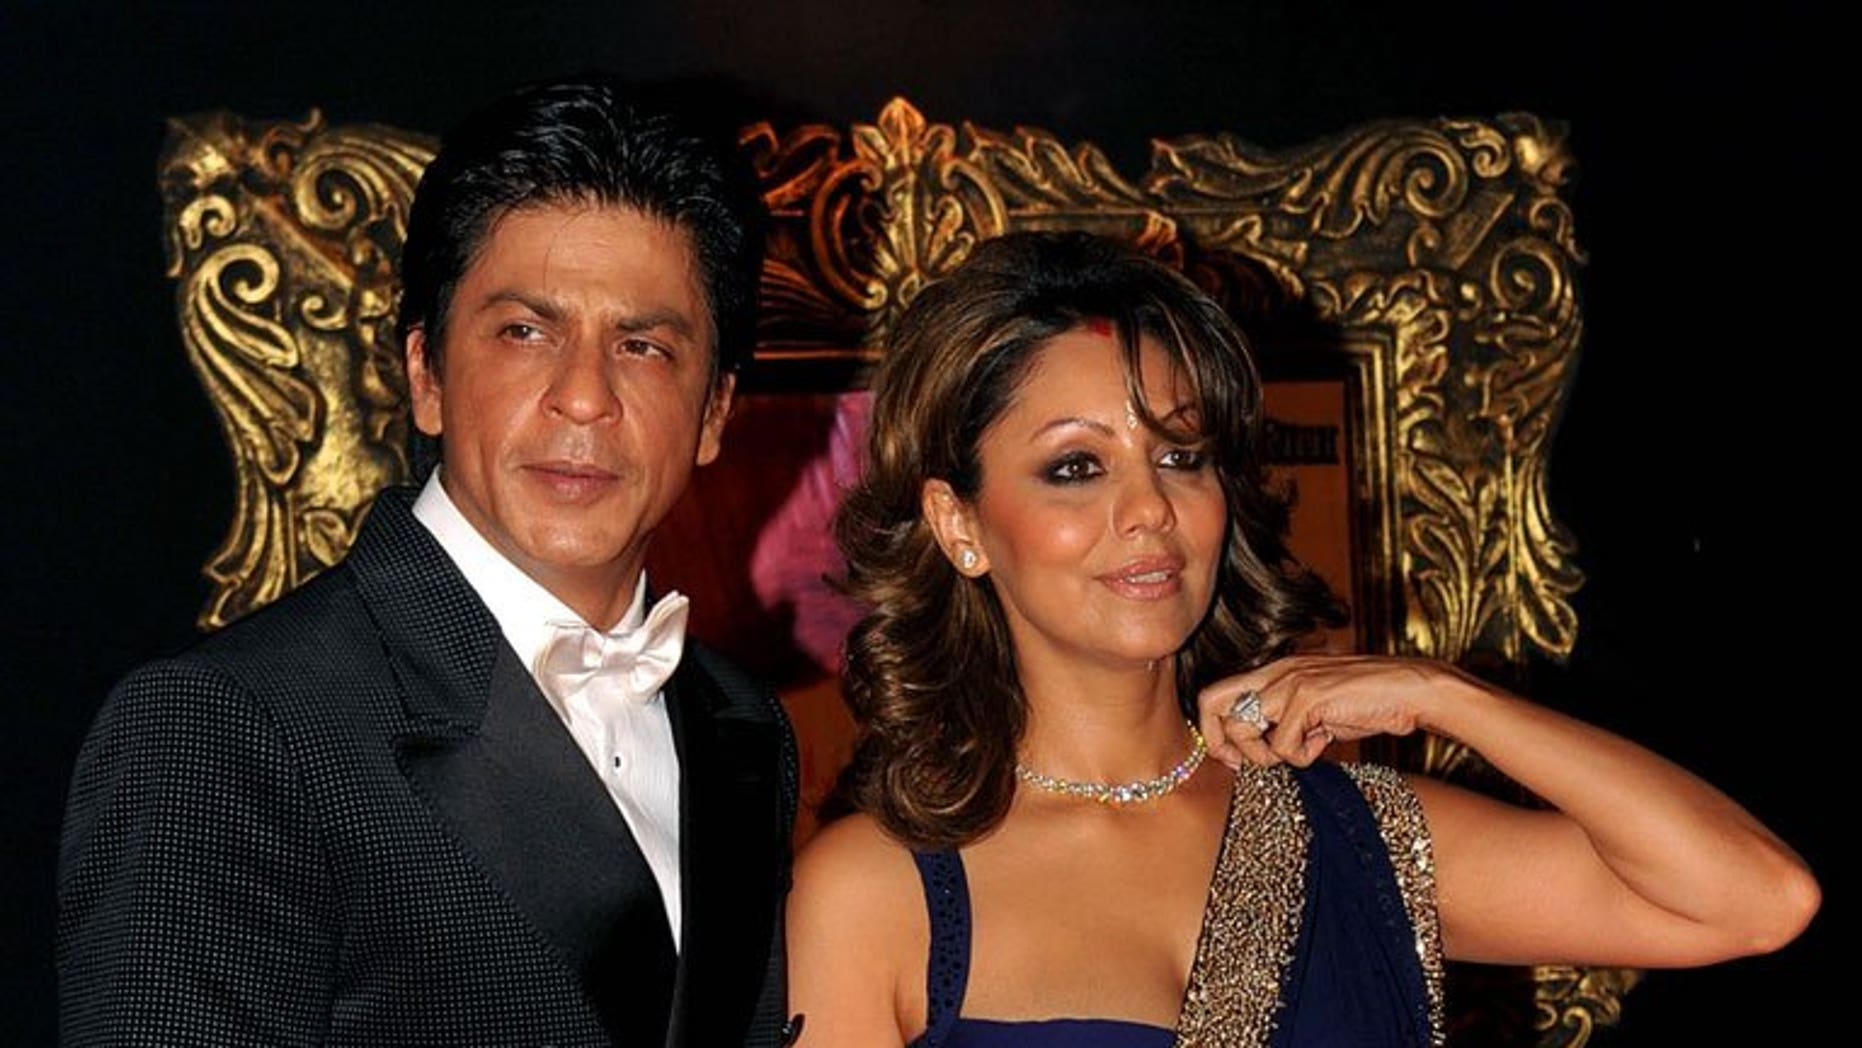 """Bollywood star Shah Rukh Khan and his wife Gauri at the premiere of """"Jab Tak Hai Jaan"""" in Mumbai on November 12, 2012. The couple have announced the arrival of their new baby boy born to a surrogate mother, and denied rumours of an illegal pre-natal gender test."""